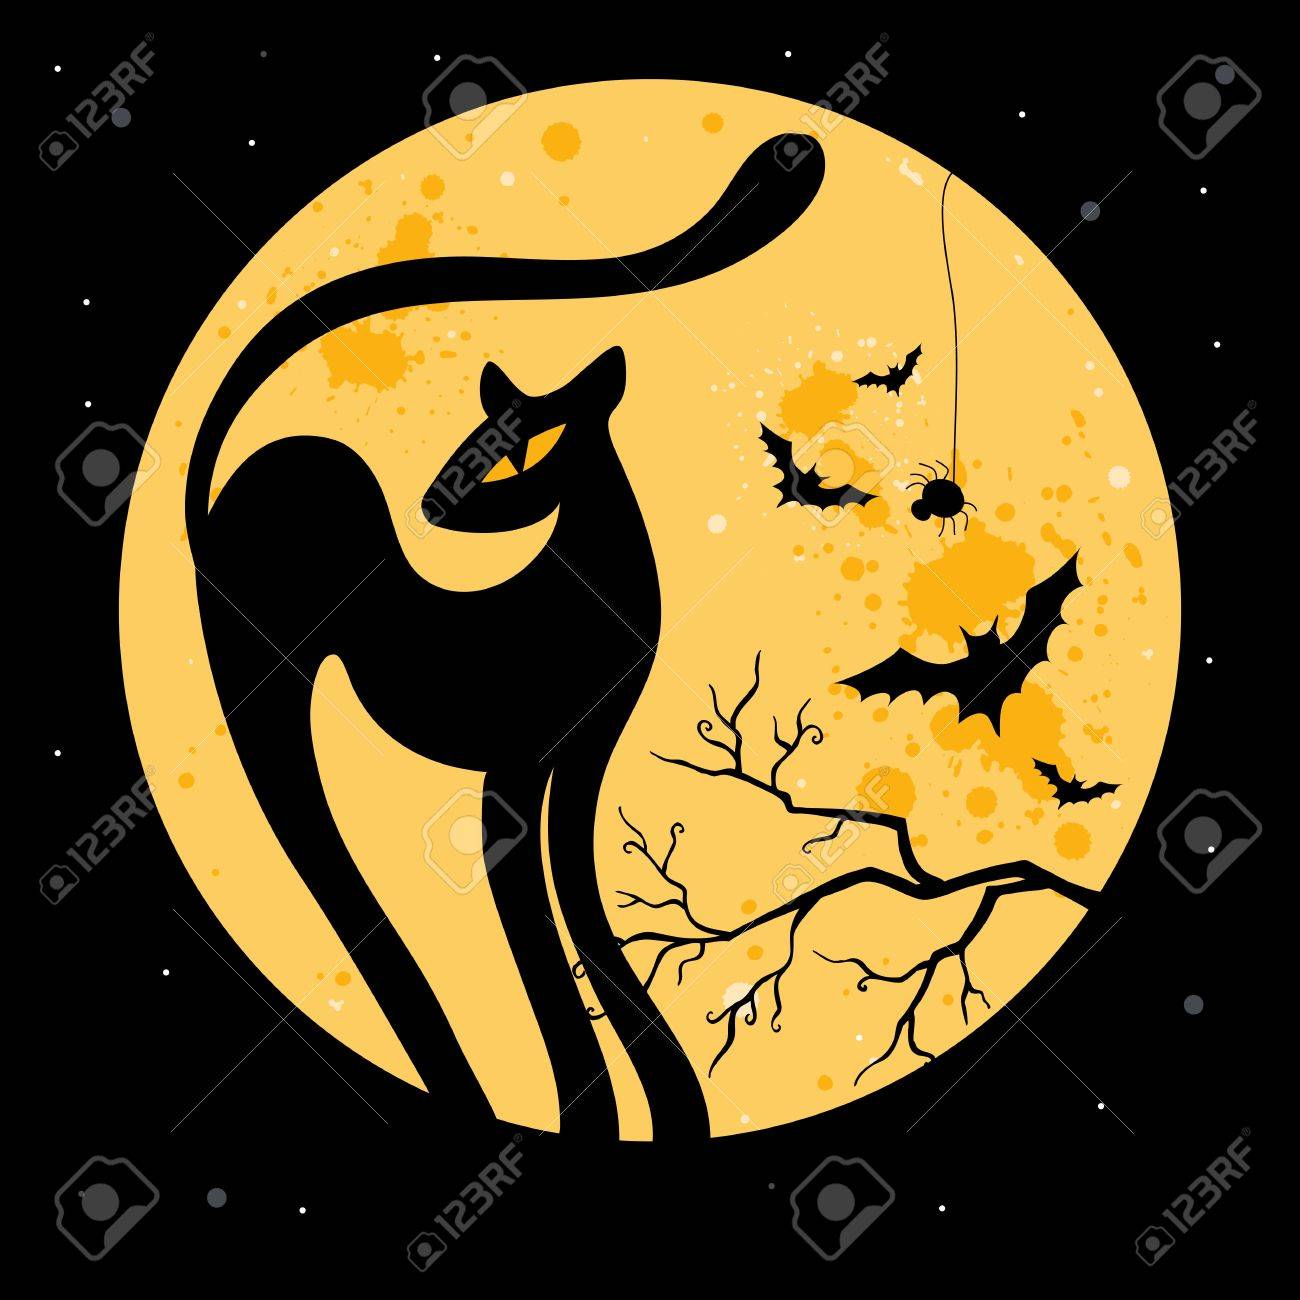 vector halloween illustration with black cat silhouette stock vector 14874817 - Black Cat Silhouette Halloween